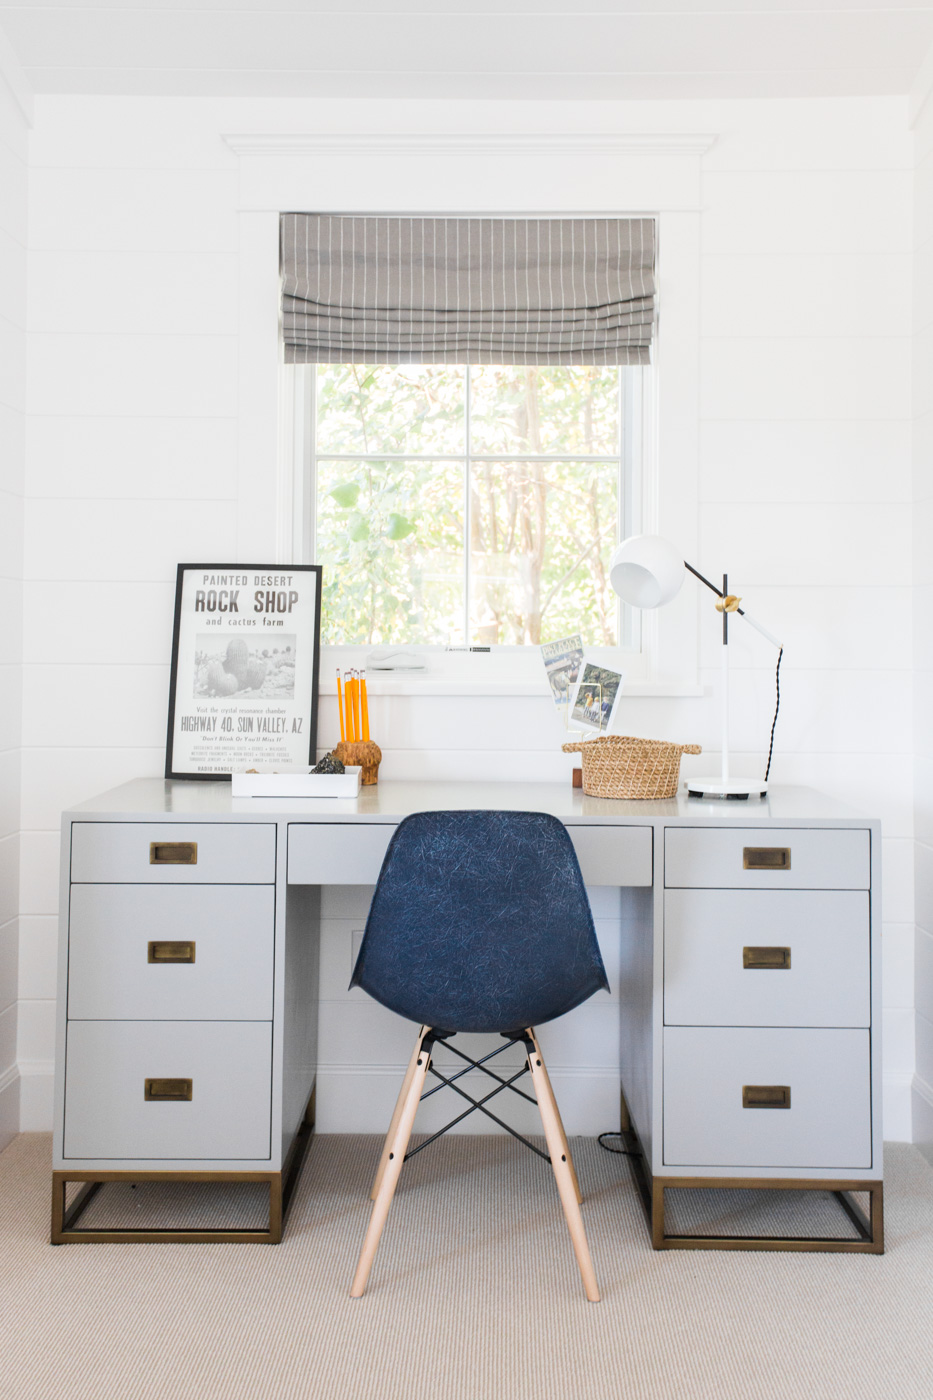 Blue chair in front home office desk